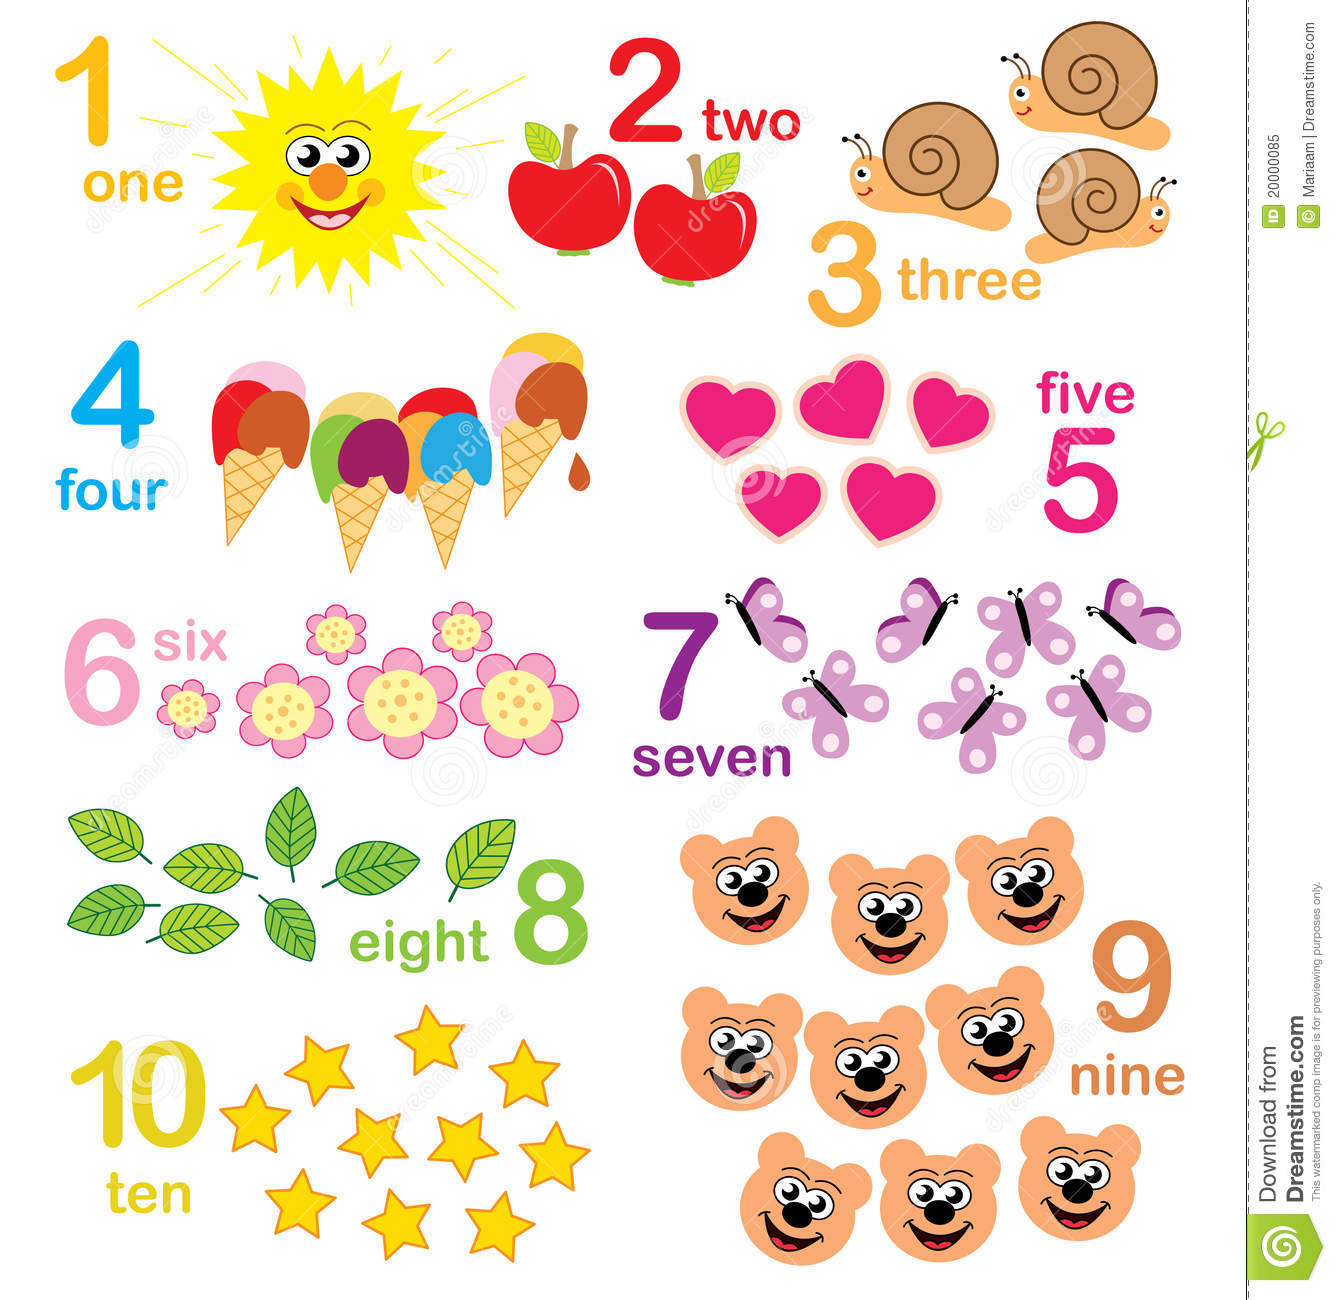 Counting Game For Kids Royalty Free Stock Photo - Image: 20000085